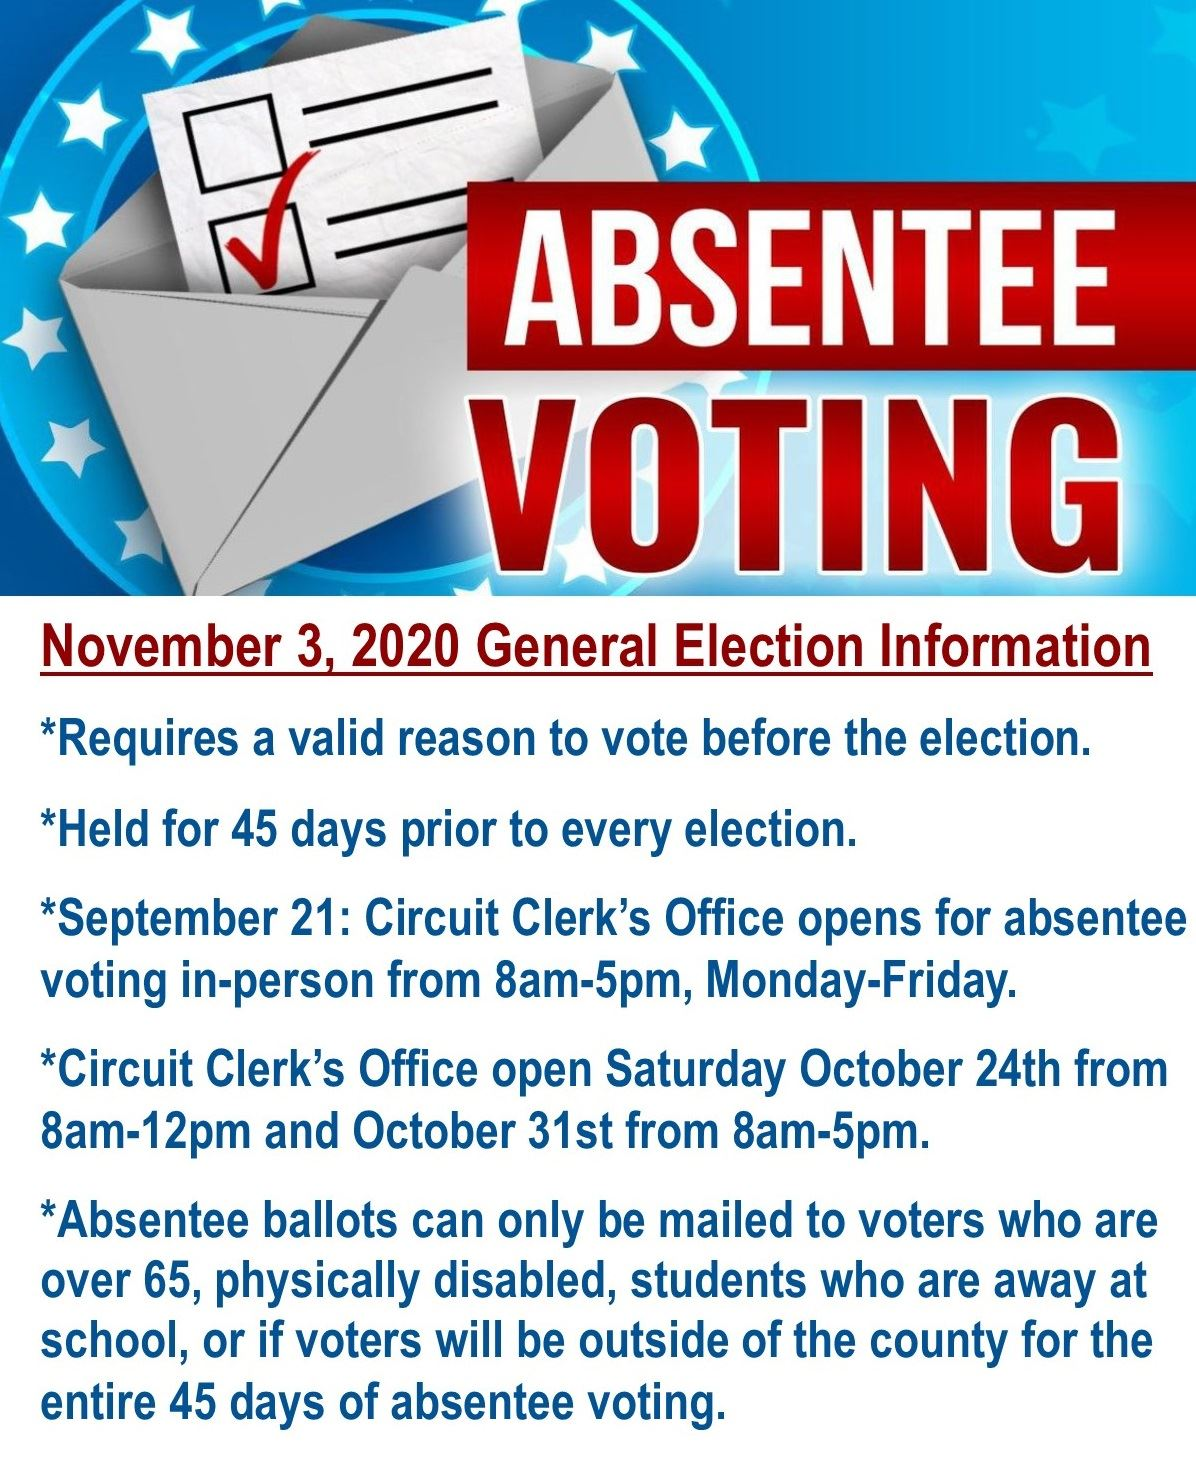 Absentee voting starts September 21, 2020 at Circuit Clerk's Office